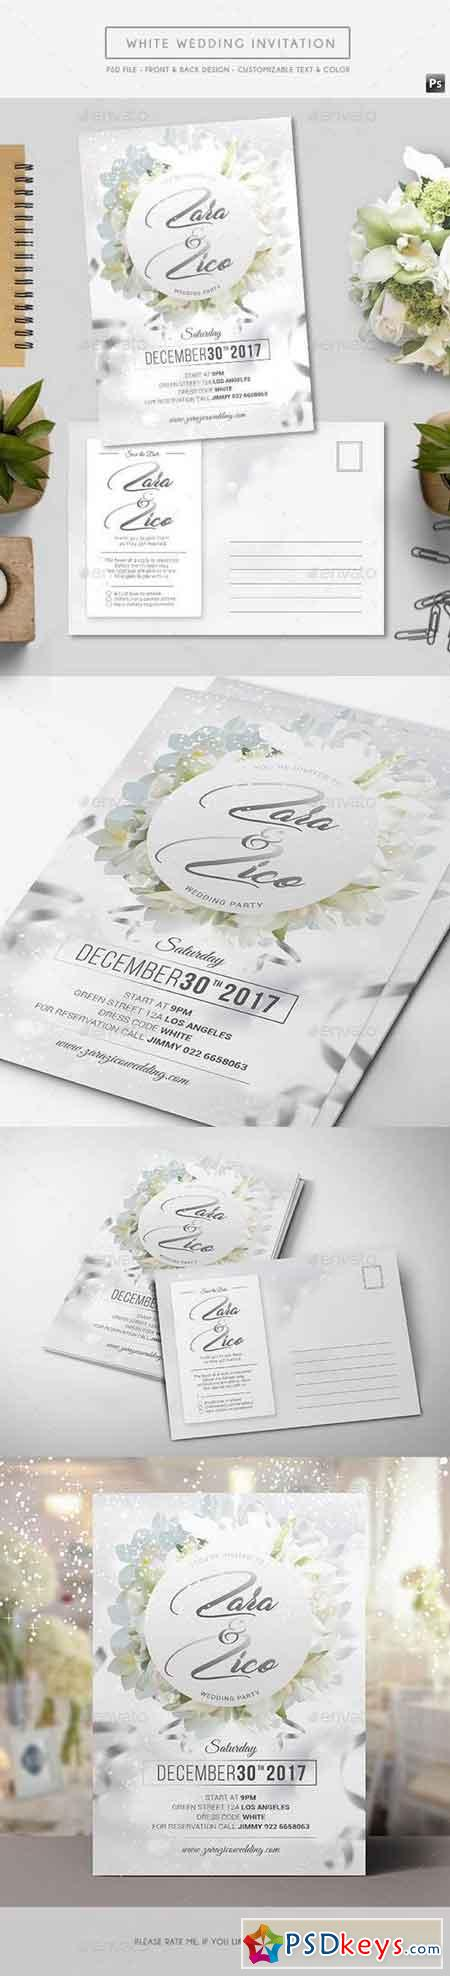 White Wedding Invitation 17494640